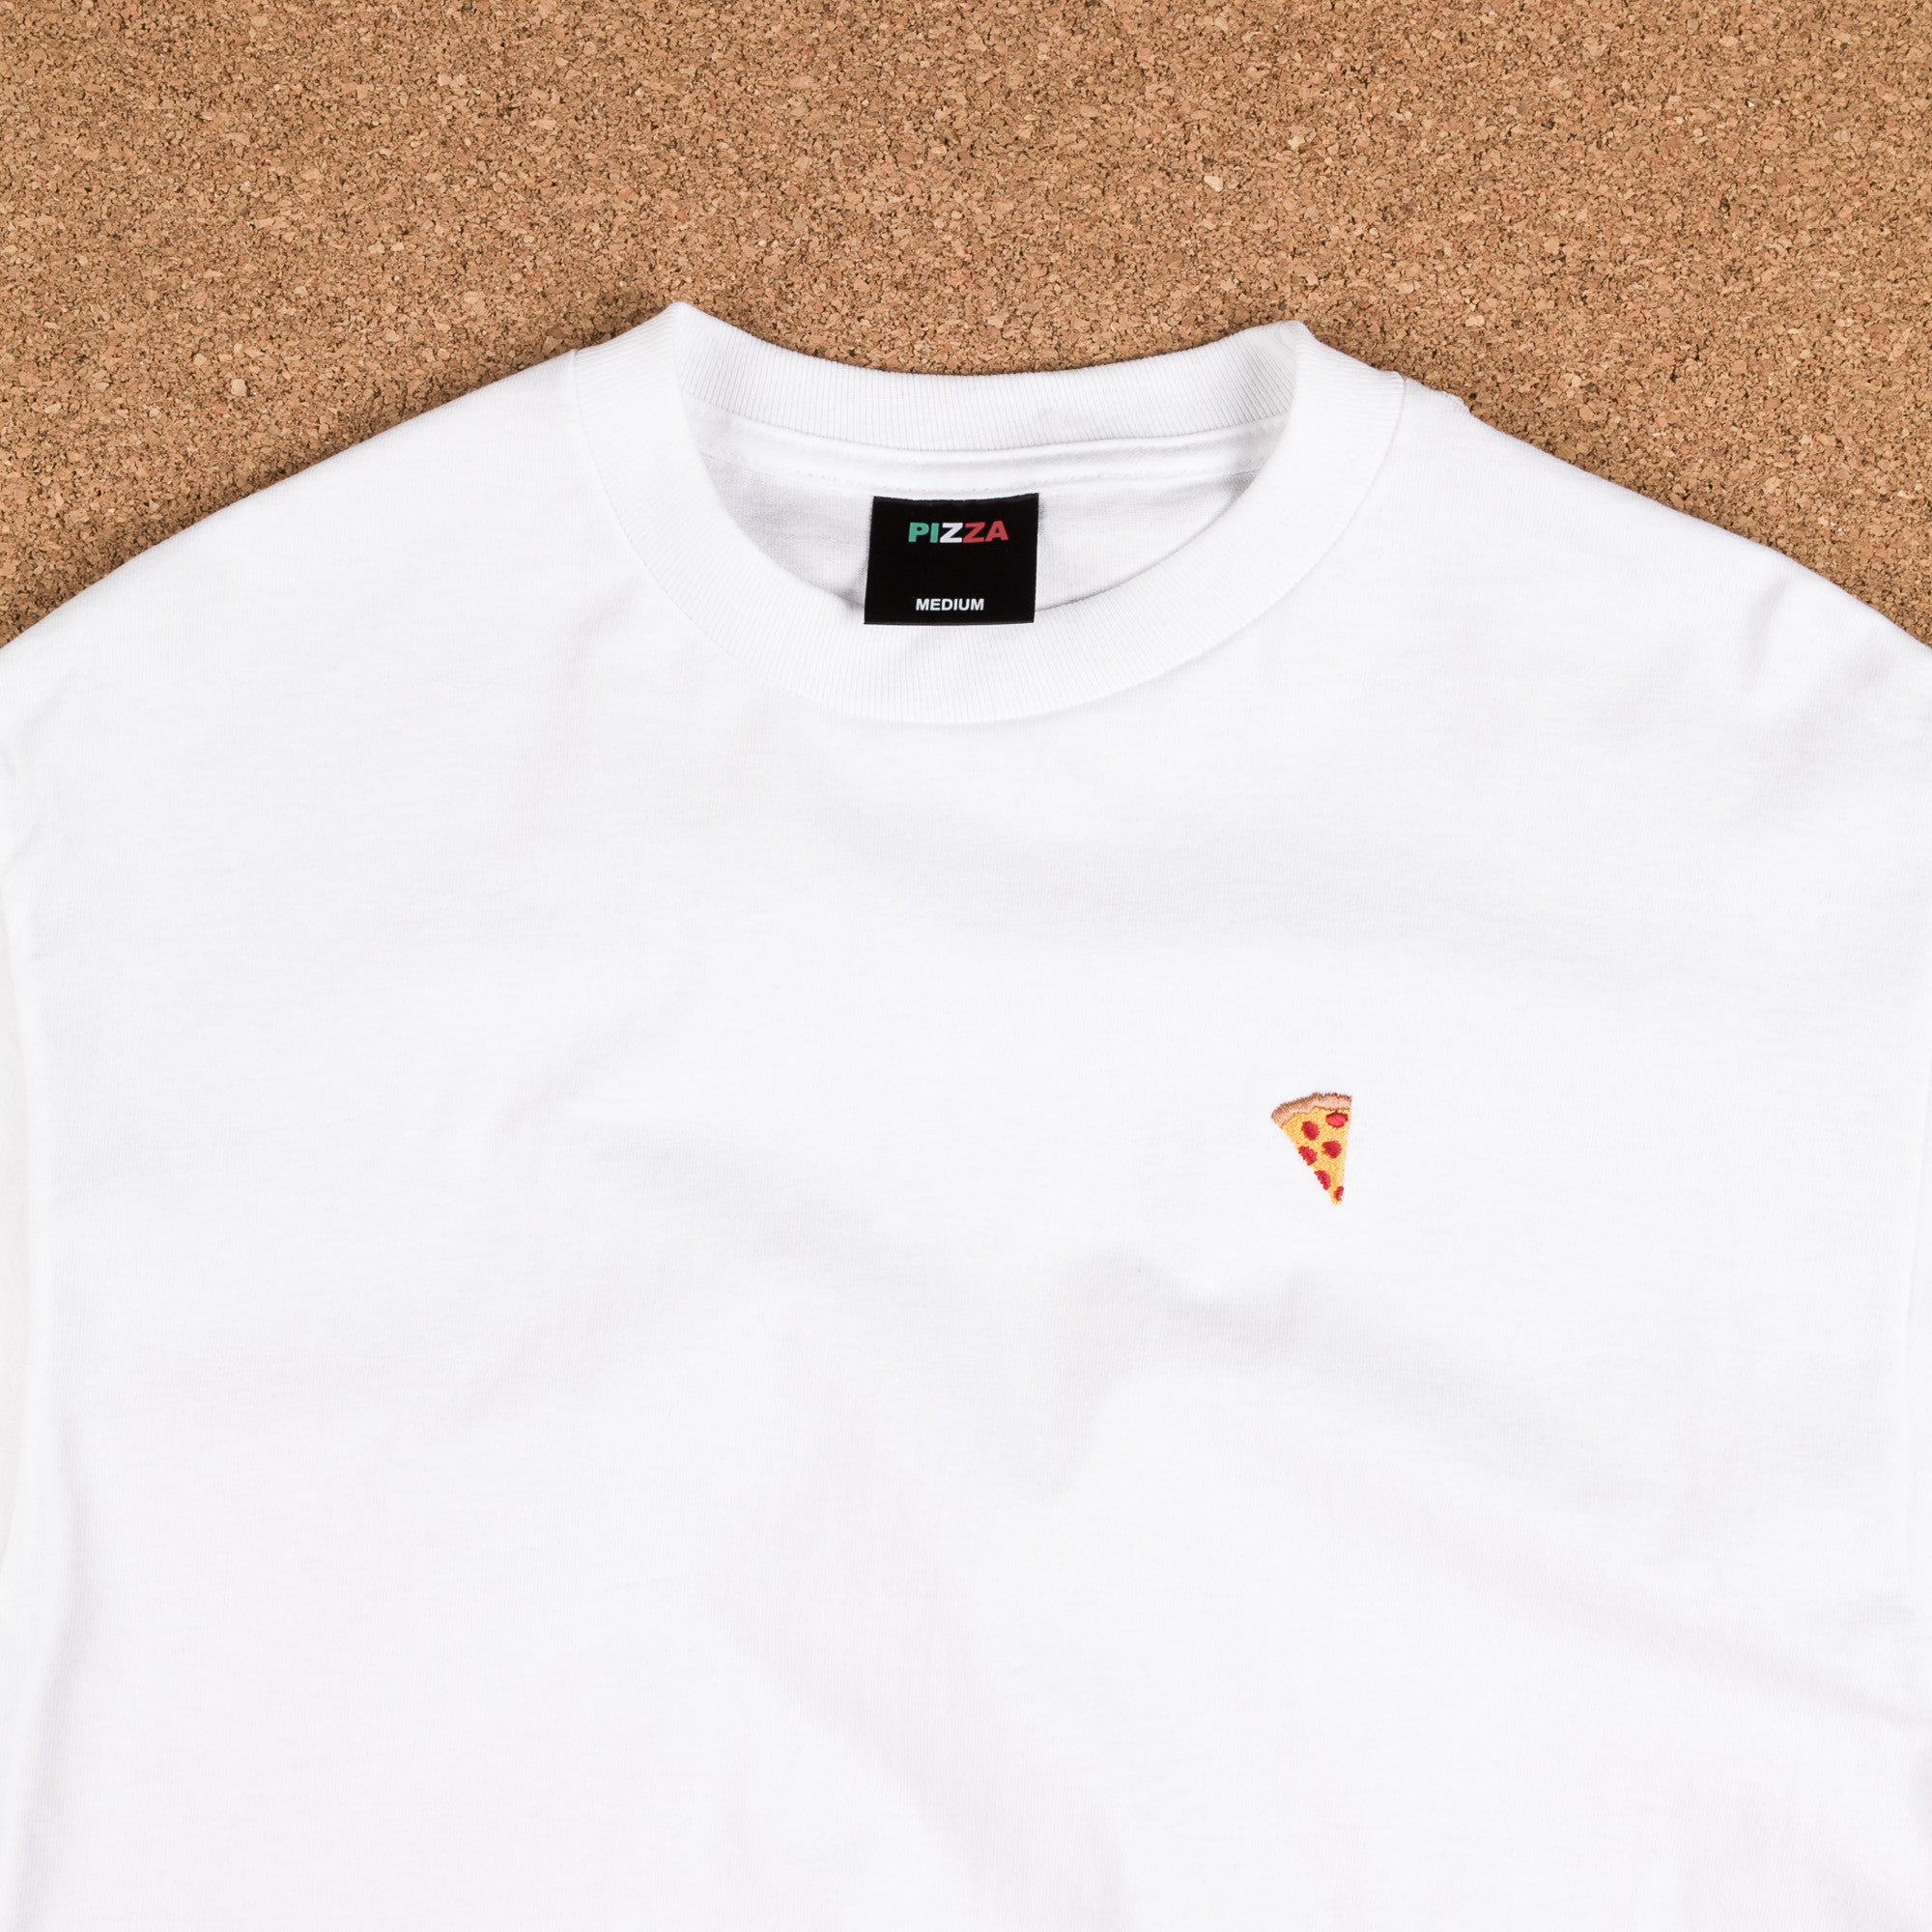 Pizza Skateboards Emoji Long Sleeve T-Shirt - White